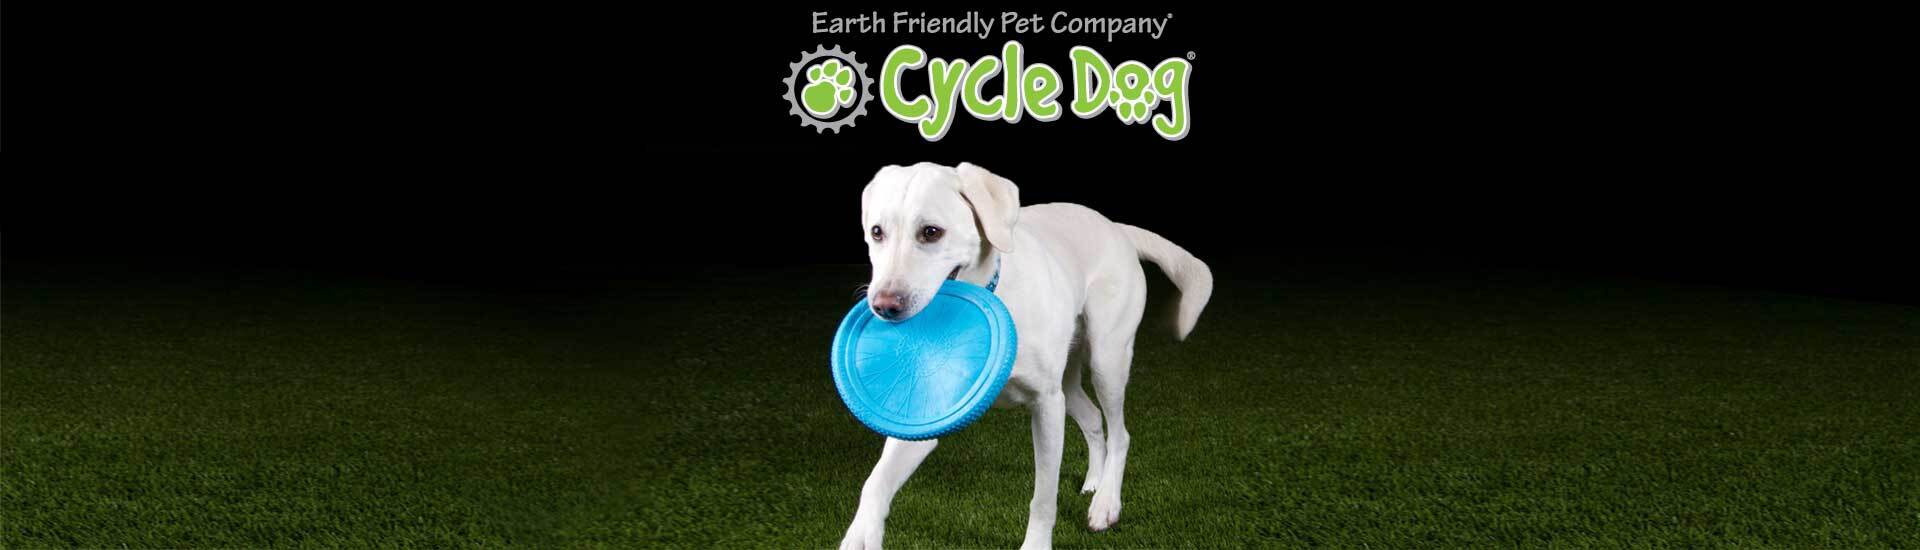 Earth-Friendly-Pet-Company-wlogo-1920x550